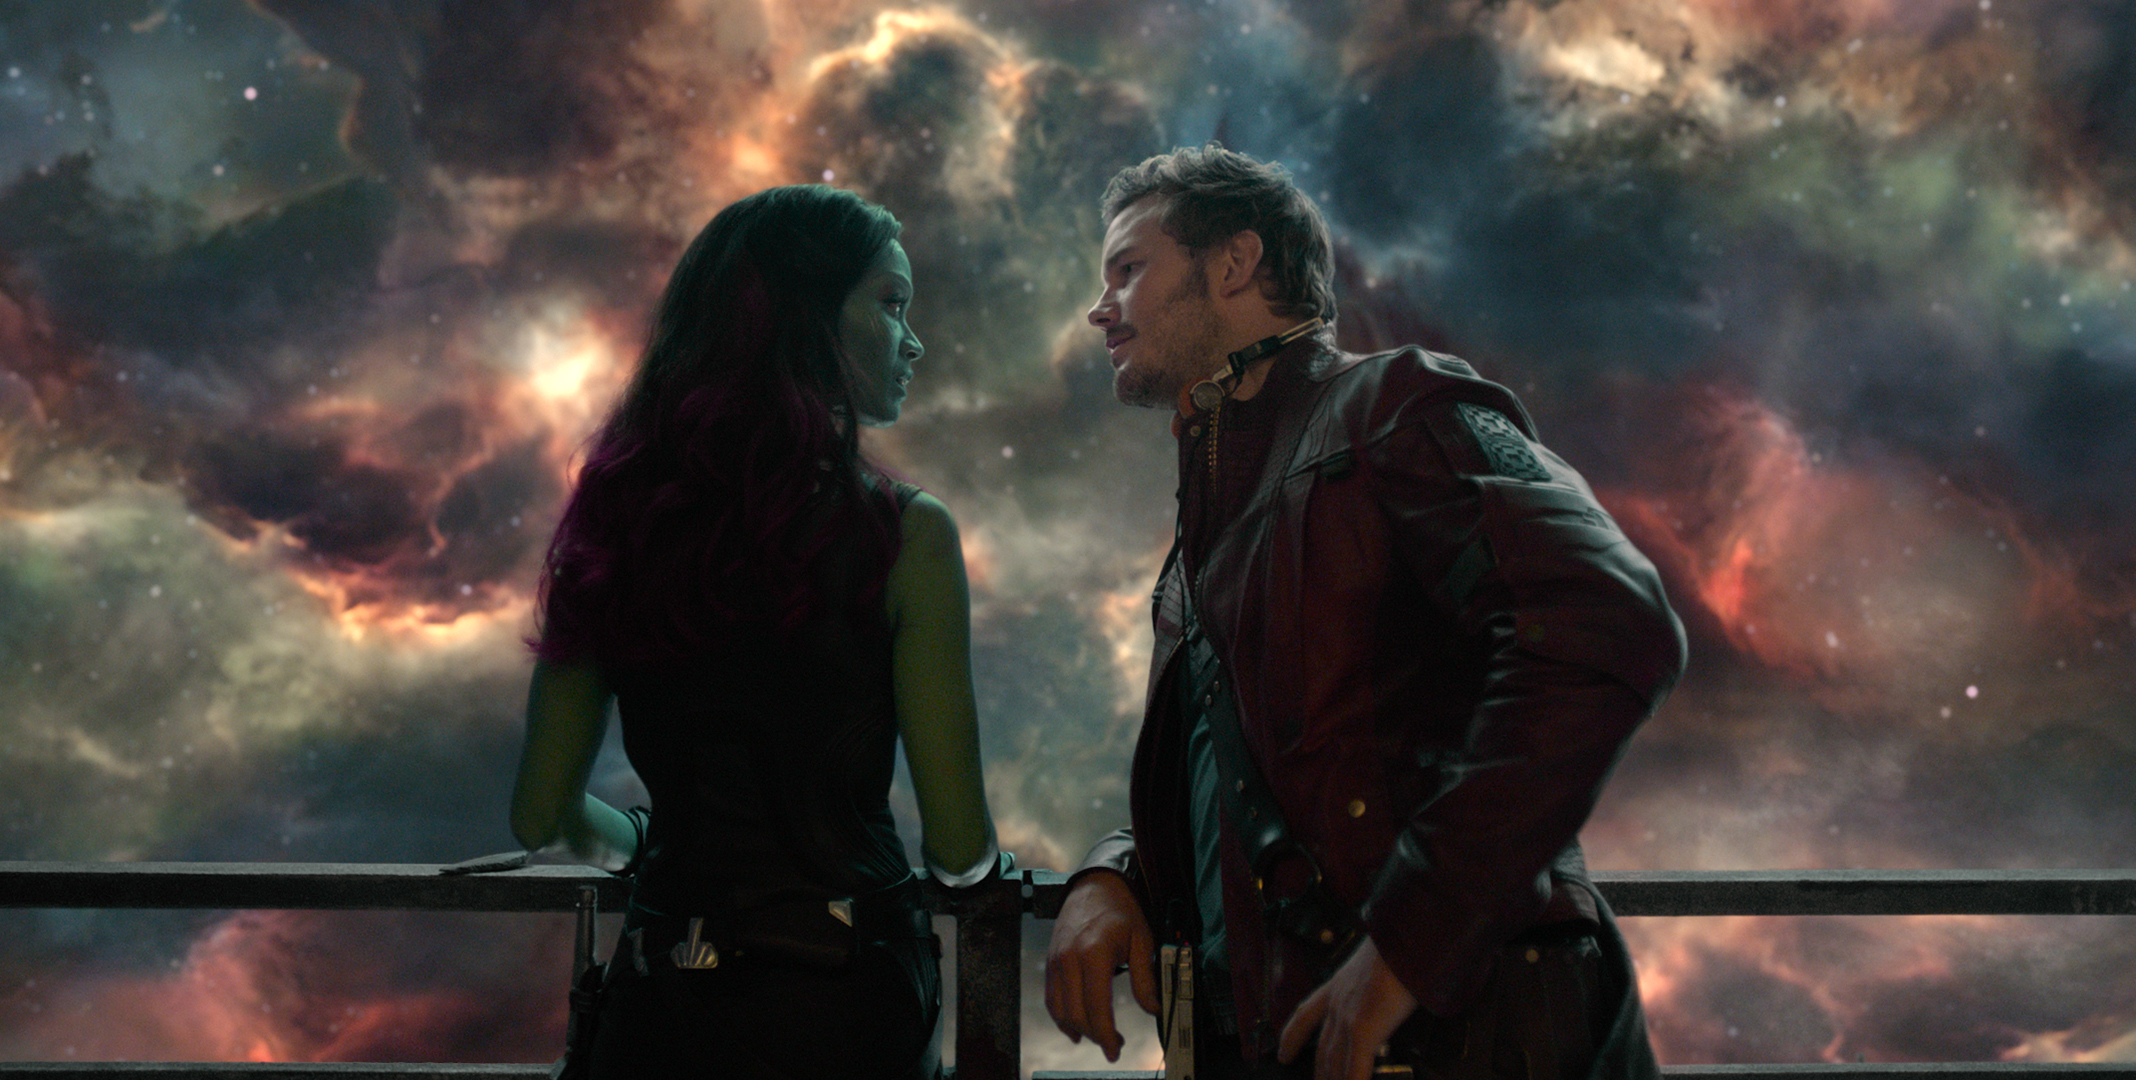 Zoe Saldana and Chris Pratt star in 'Guardians of the Galaxy'